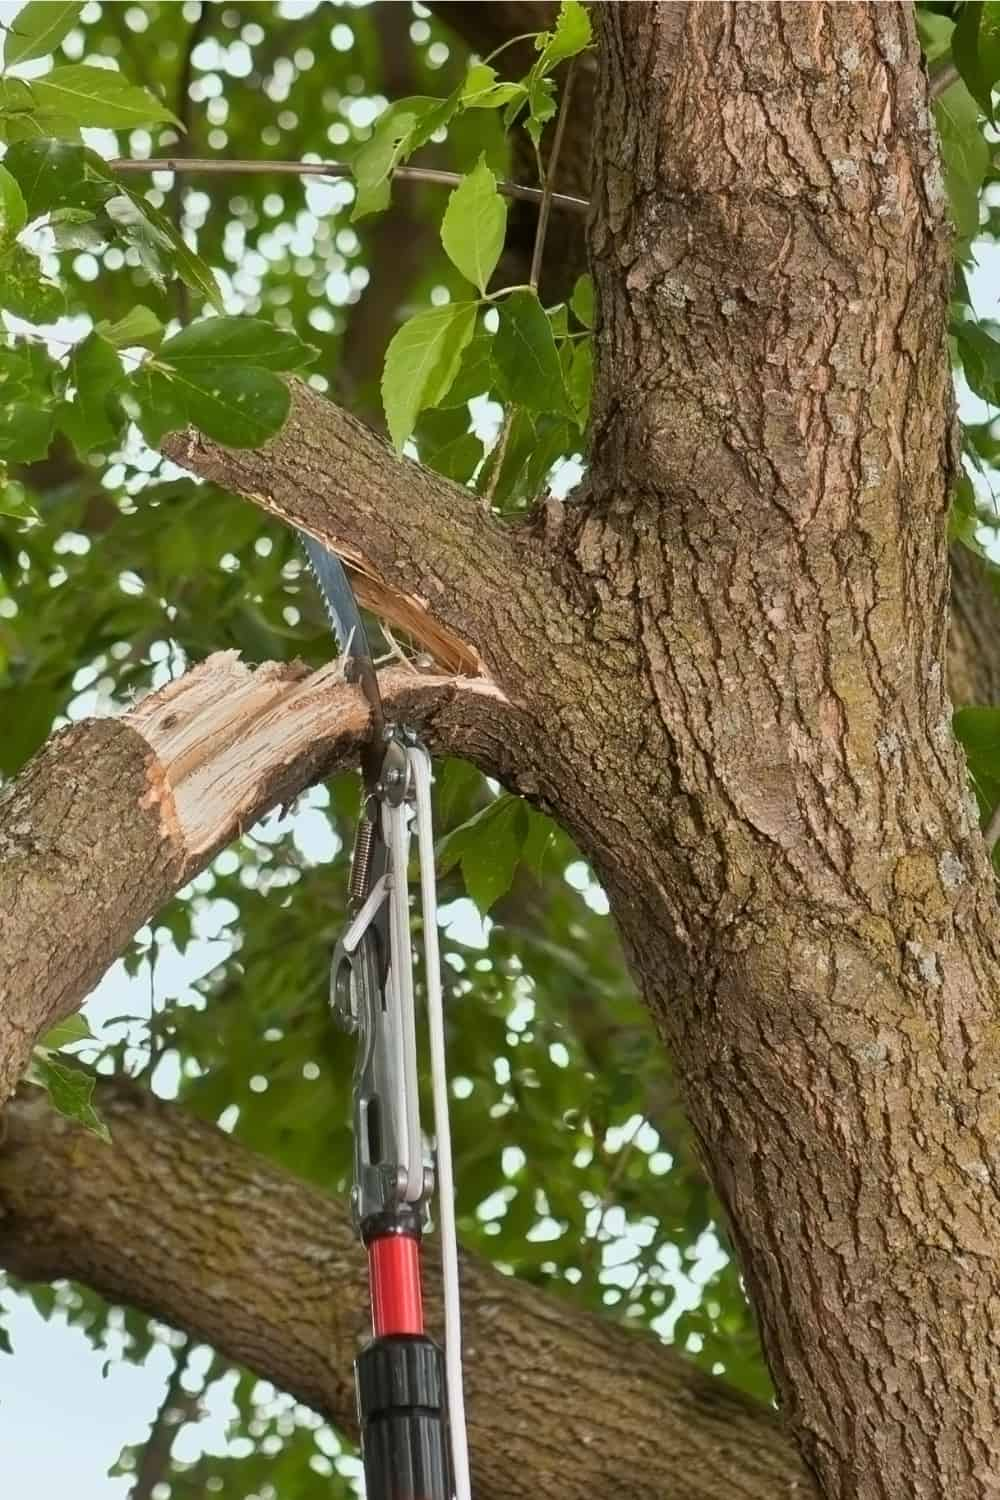 pole saw cutting down broken branch from a tree